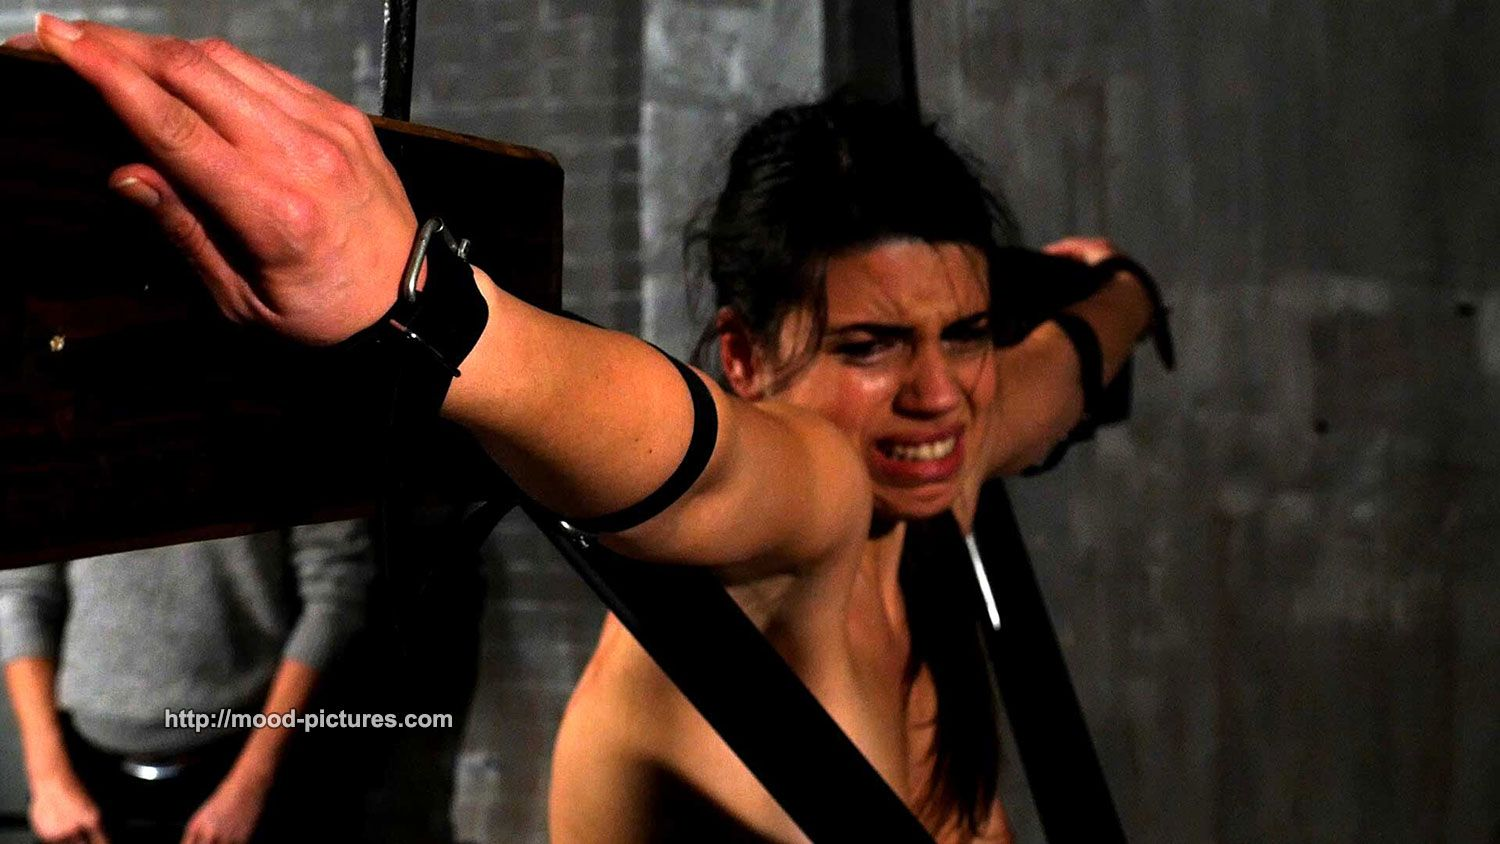 Bdsm whipping scenes